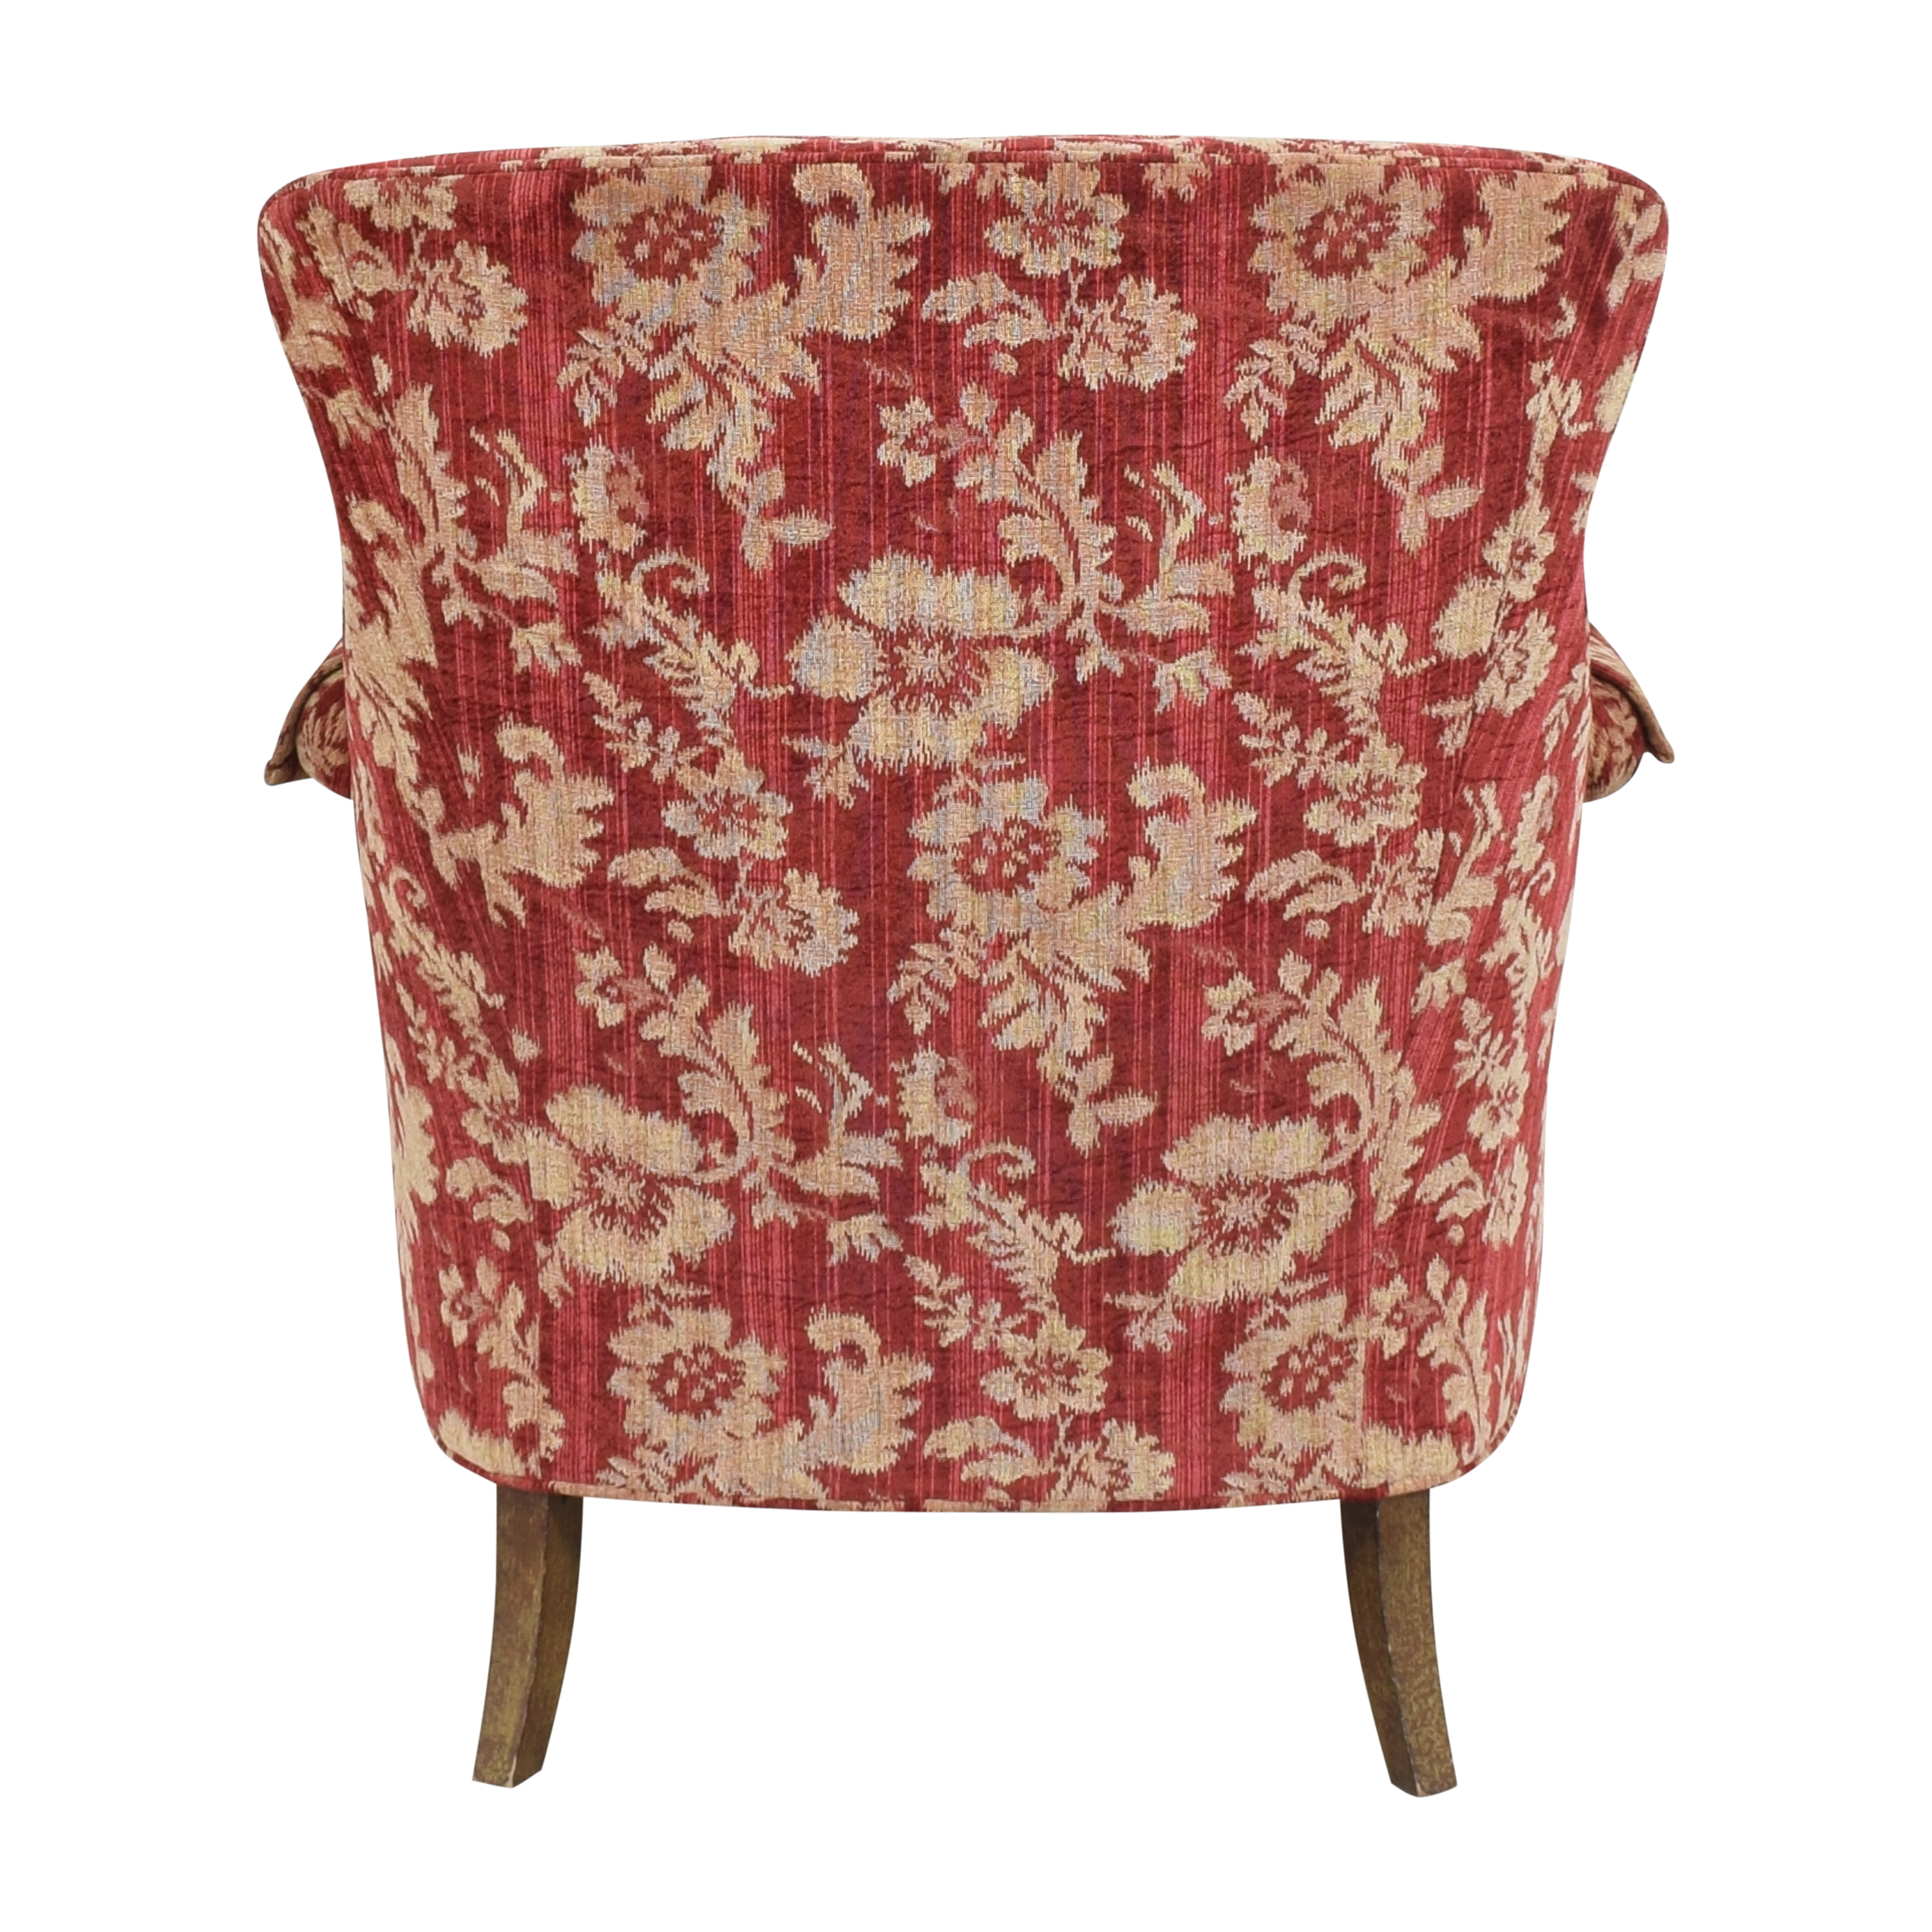 Drexel Heritage Drexel Heritage Custom Wingback Accent Chair red and cream